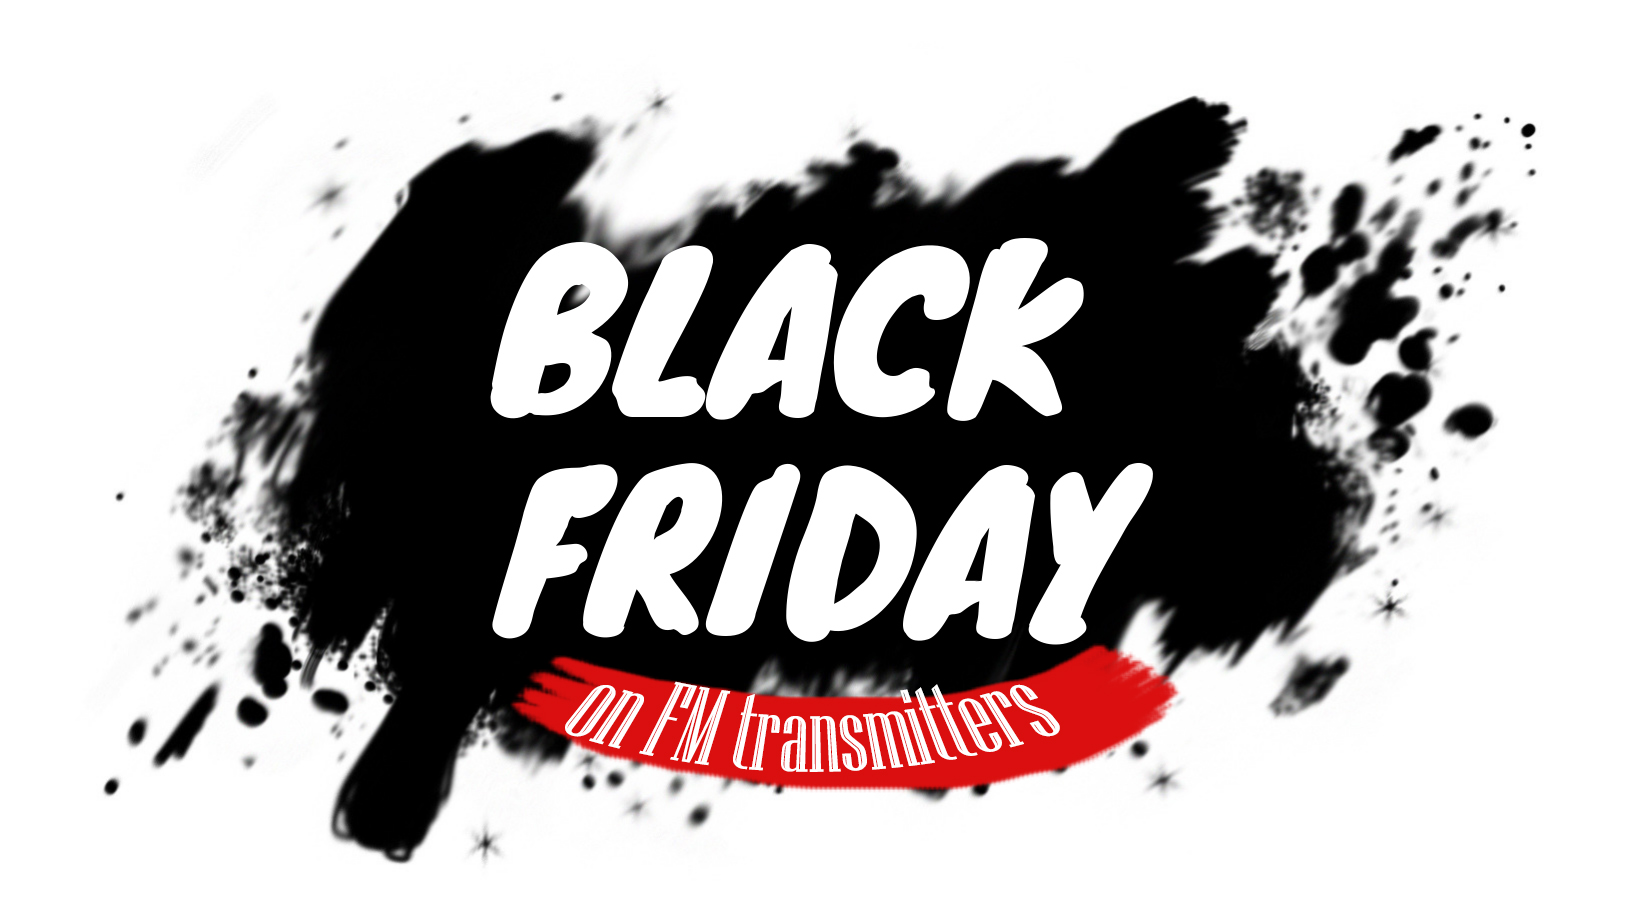 Black Friday Comes Early Db Digital Broadcast